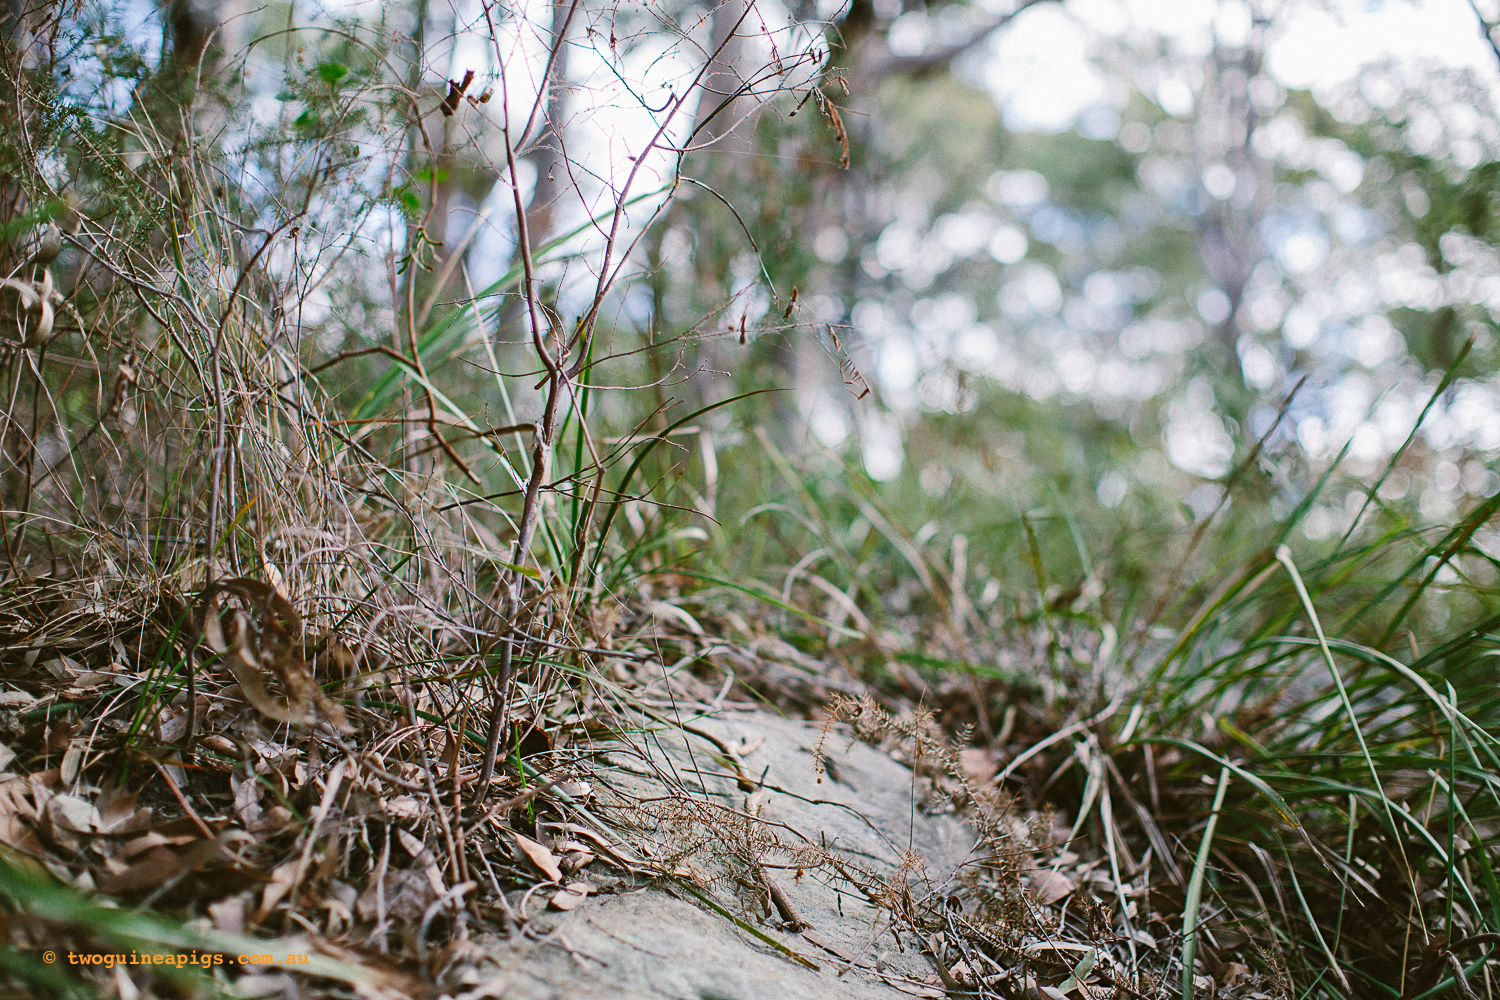 twoguineapigs_pet_photography_berry_island_reserve_wollstonecraft_location_scout_1500-26.jpg